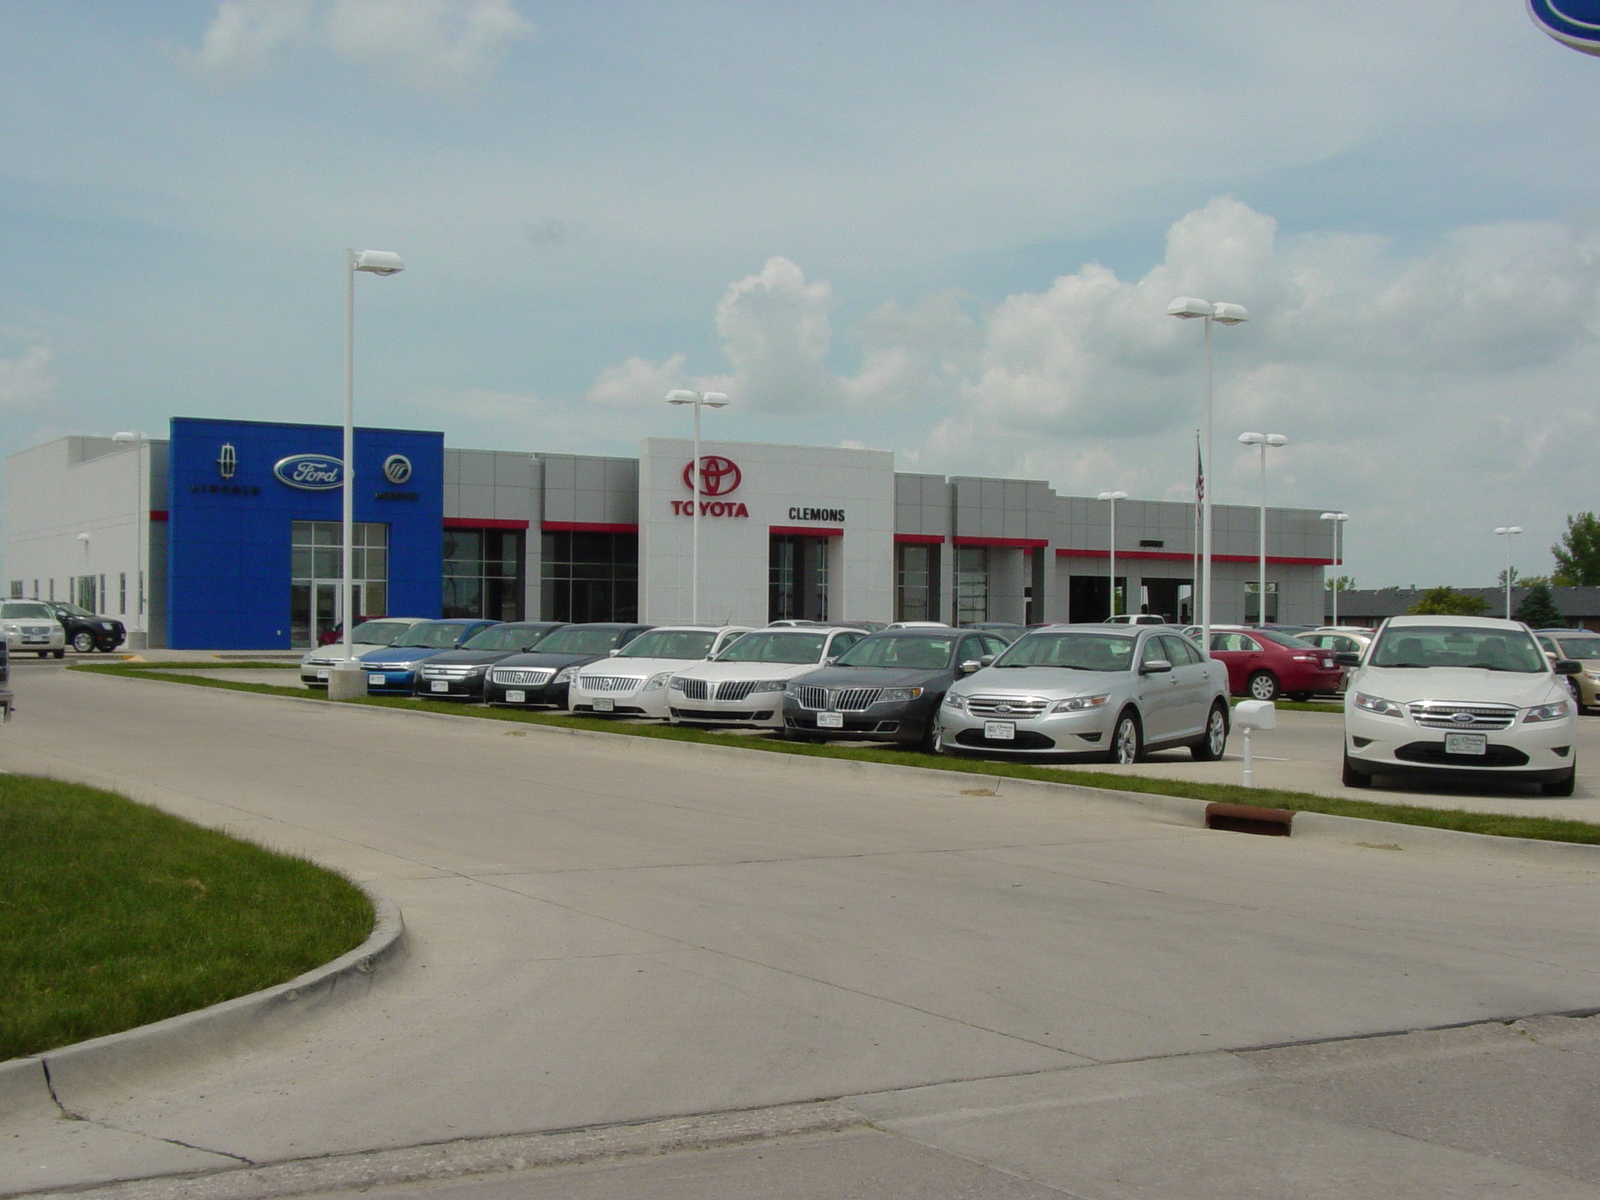 Clemons Dealership - Ottumwa